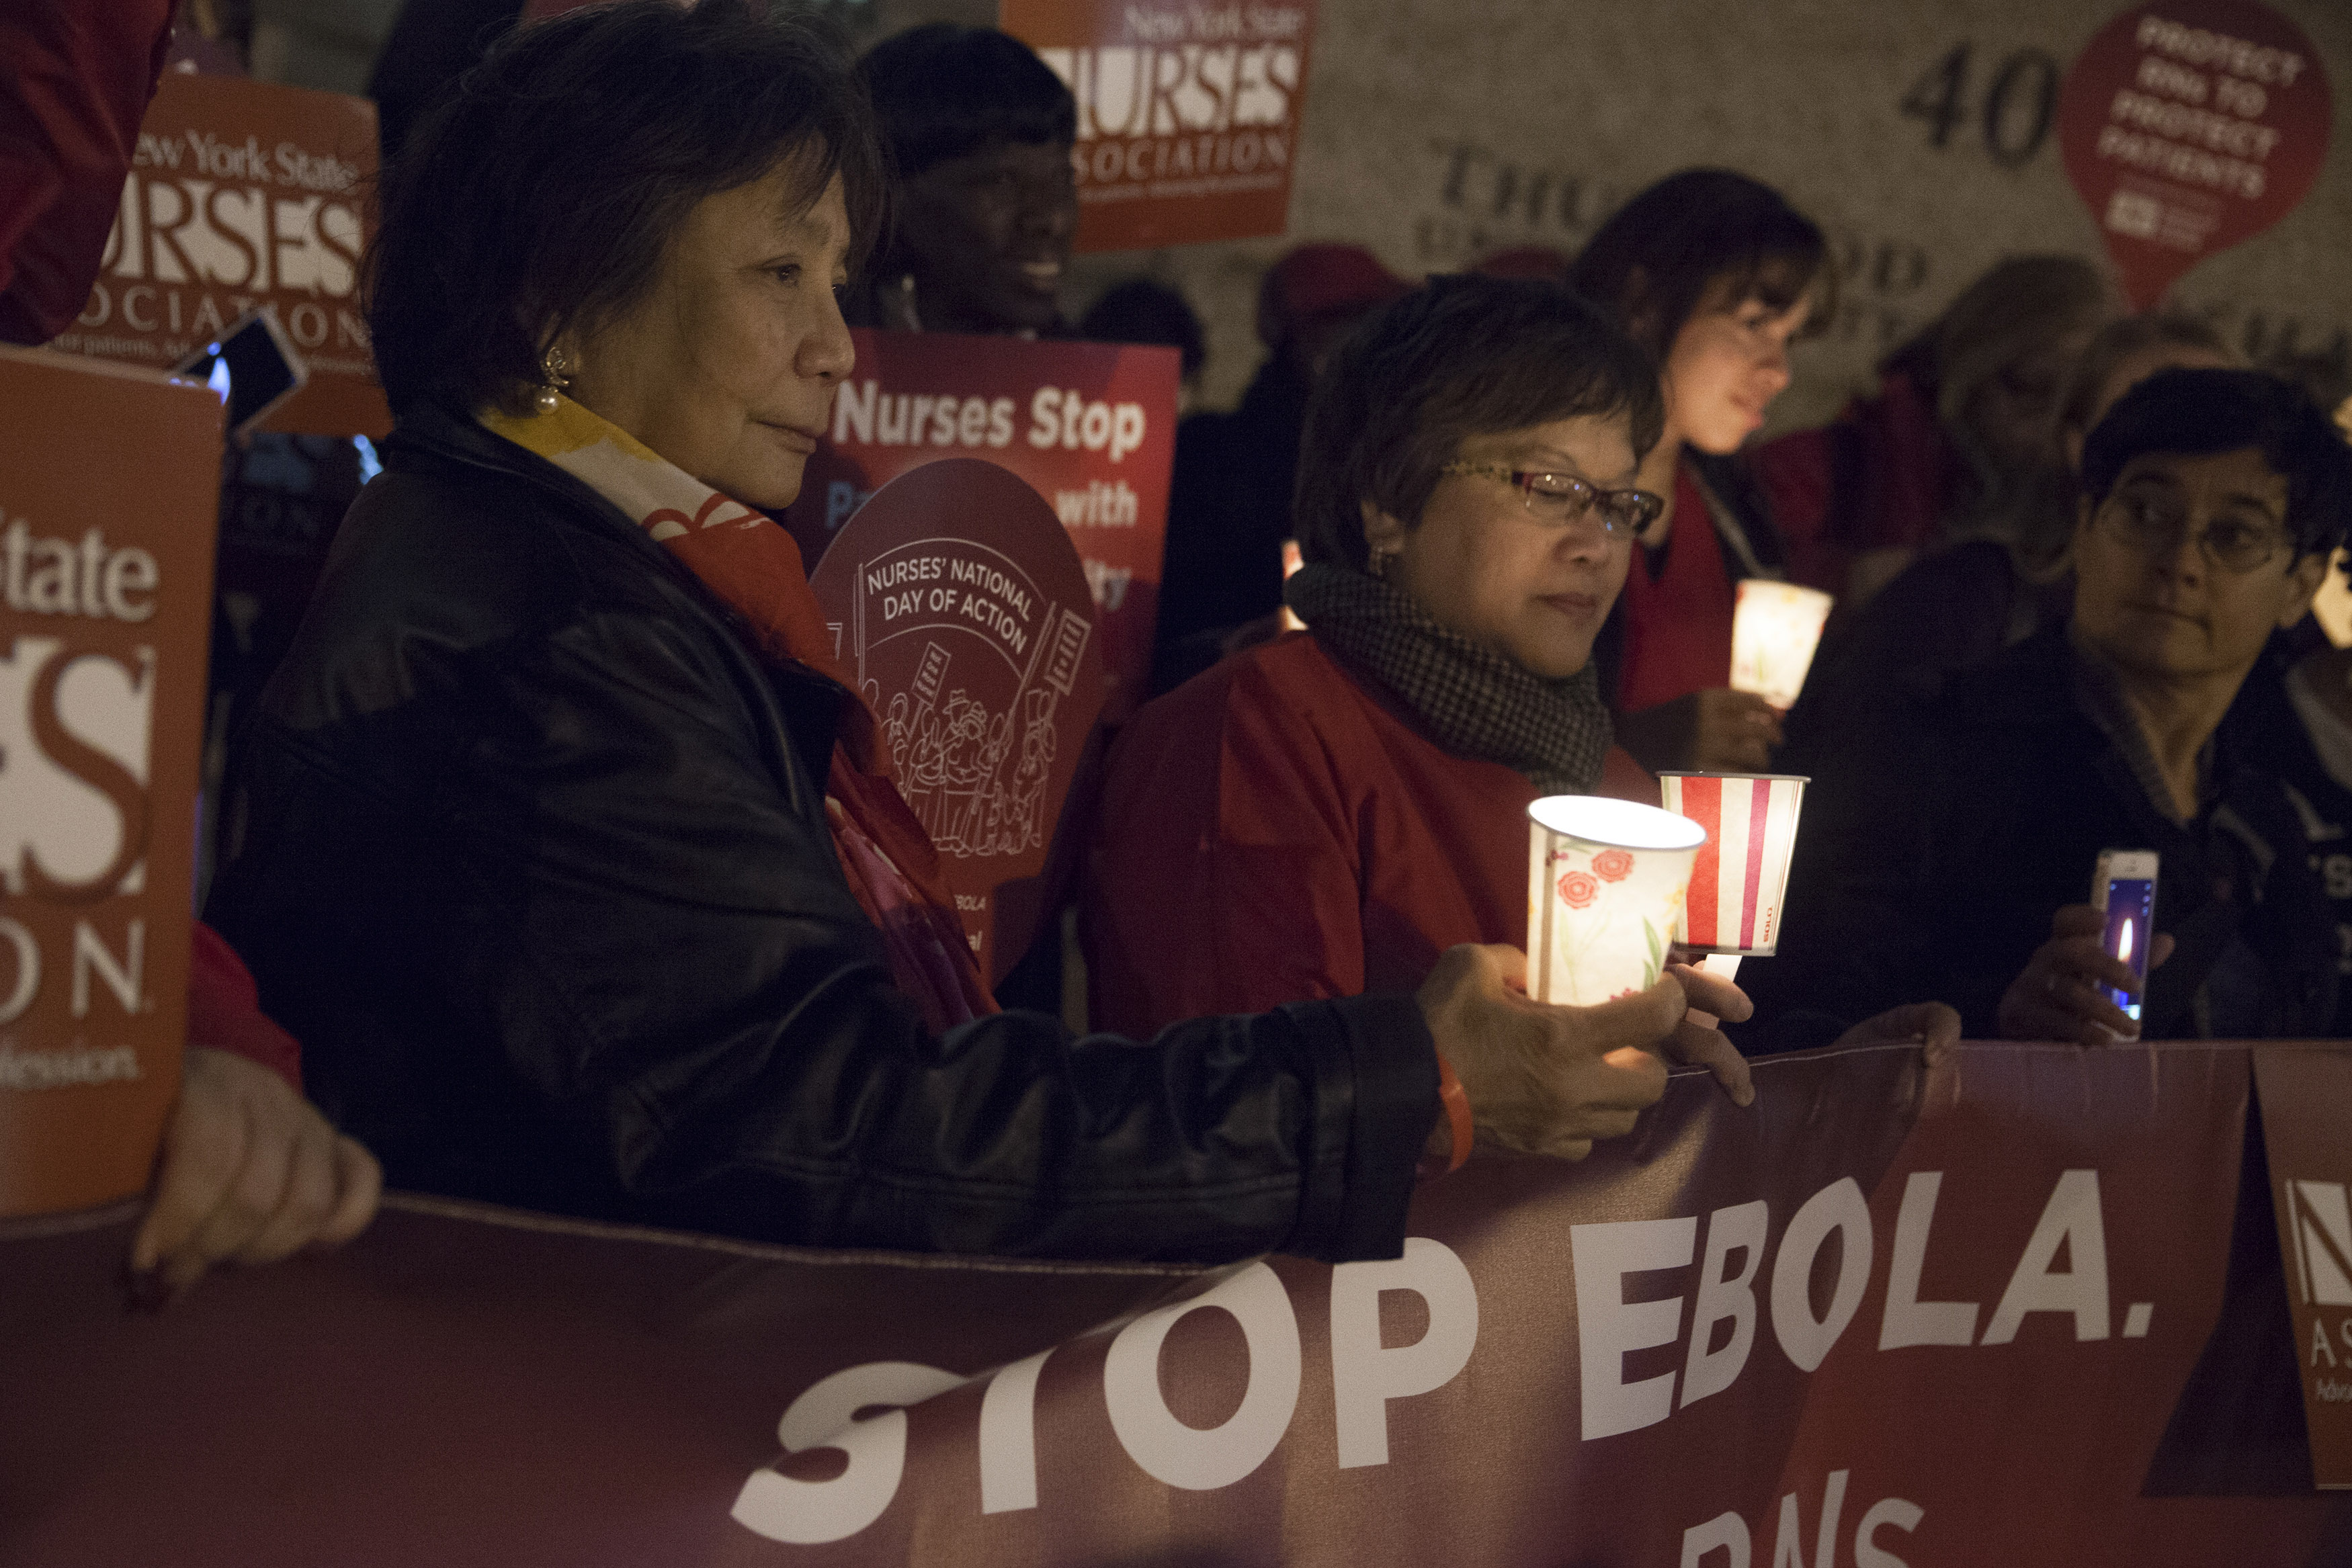 Nurses from the New York State Nurses Association protest for improved Ebola safeguards, part of a national day of action, in New York City November 12, 2014.